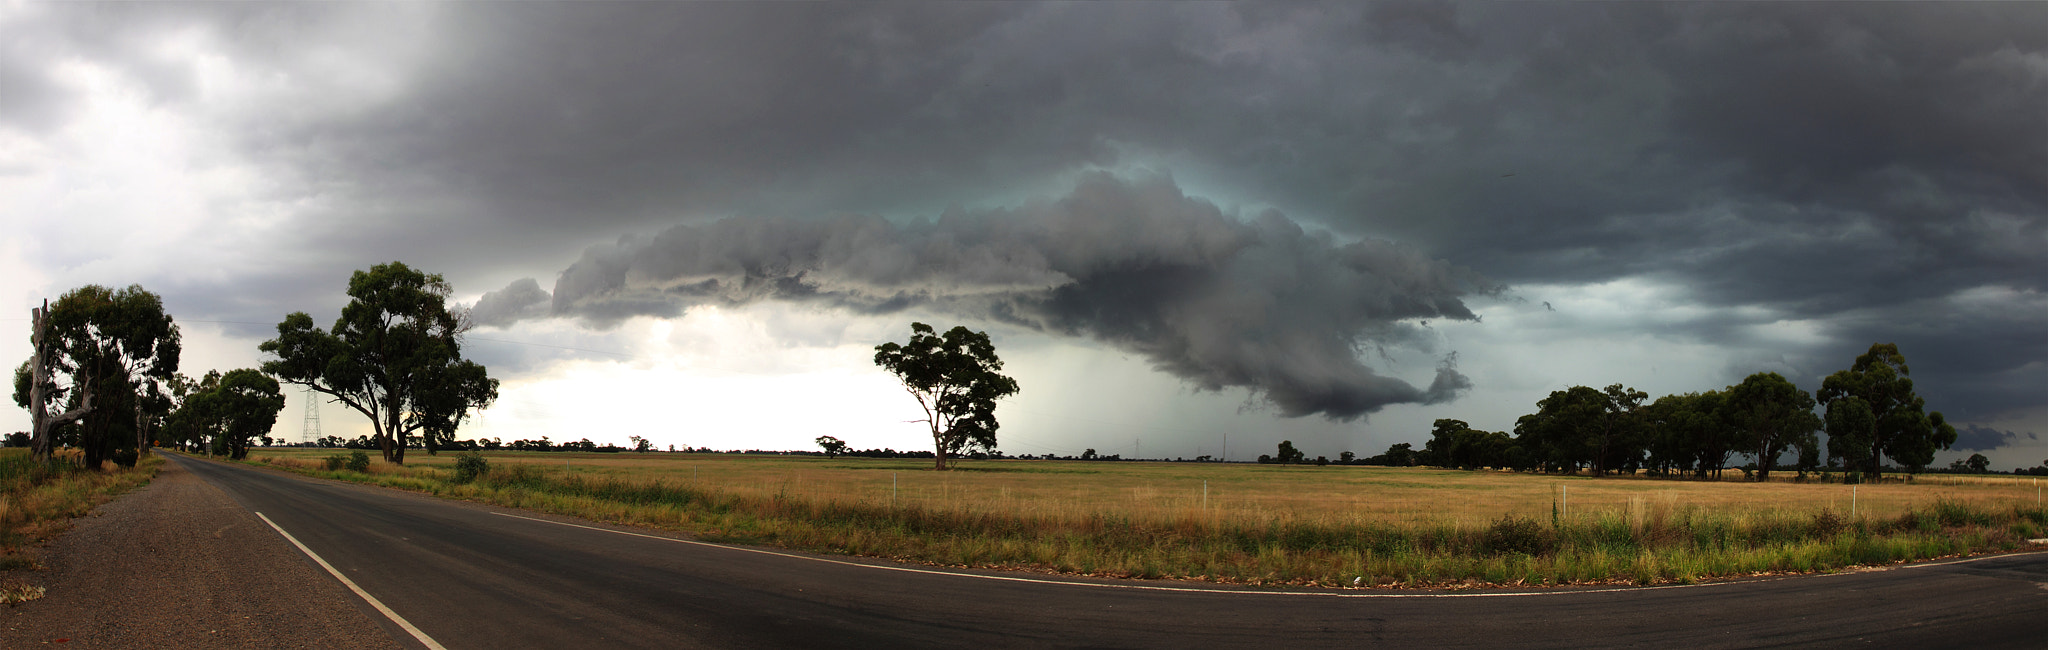 Photograph Severe Thunderstorm Panorama by Greg Thomas on 500px